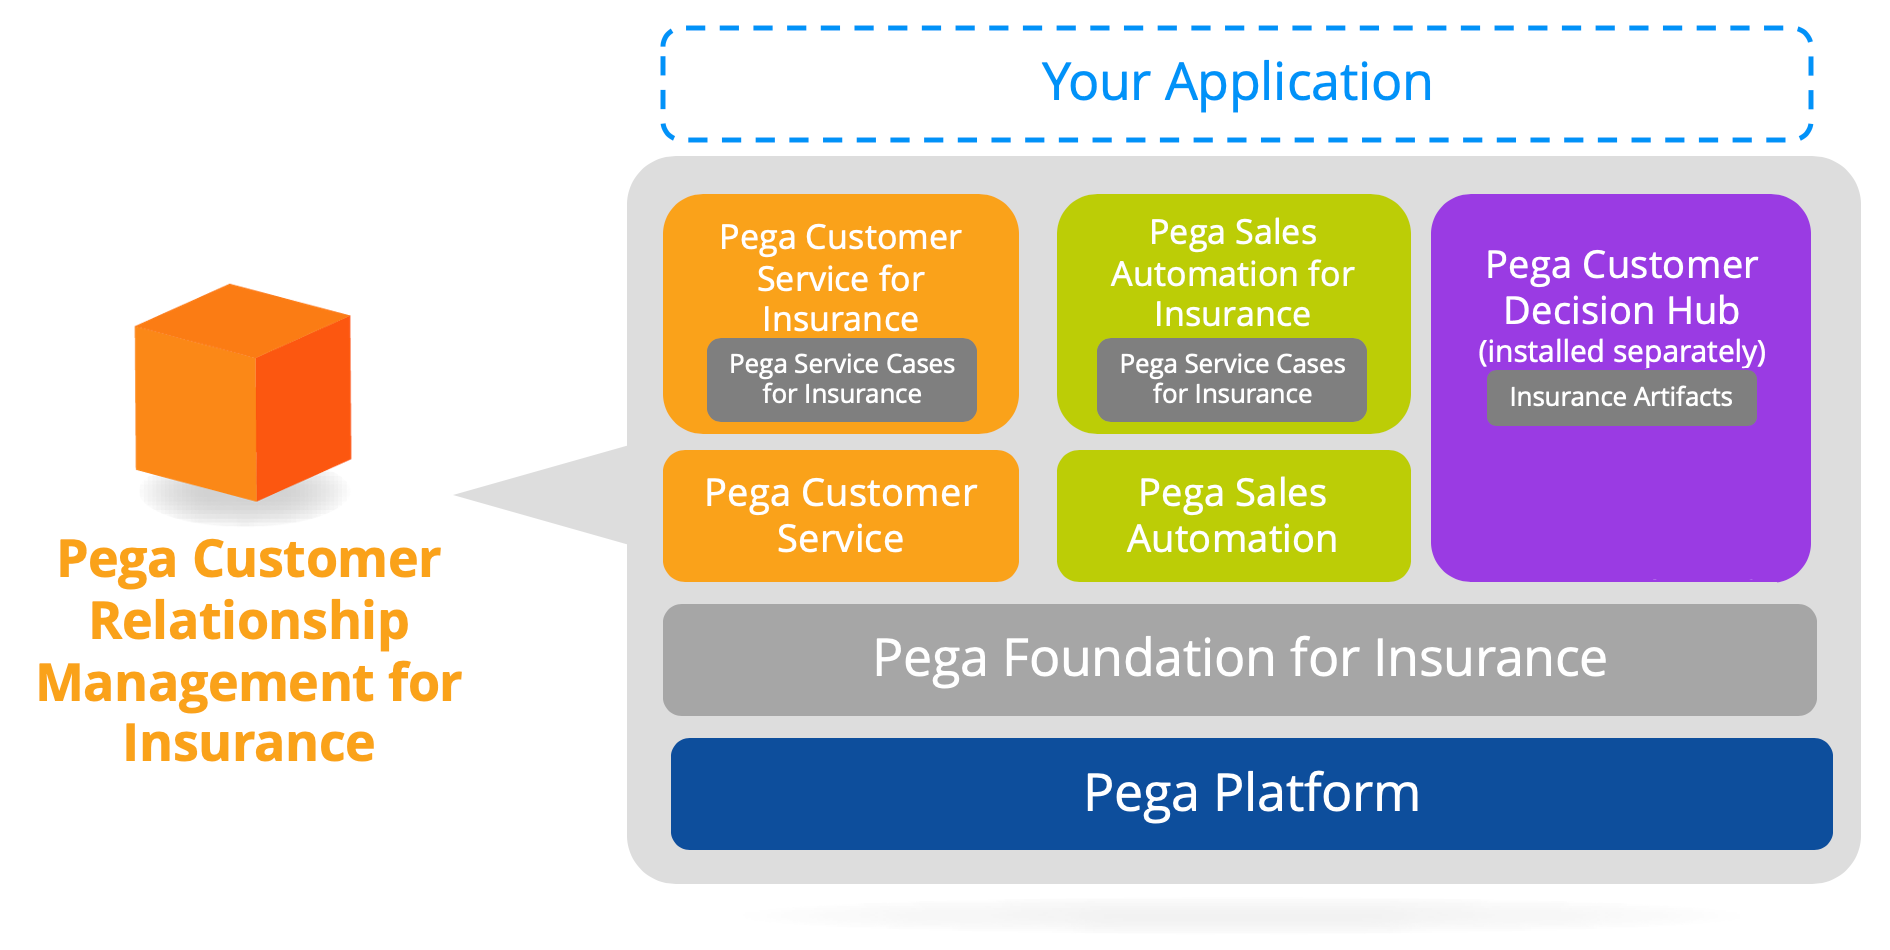 Pega Sales Automation for Insurance application stack